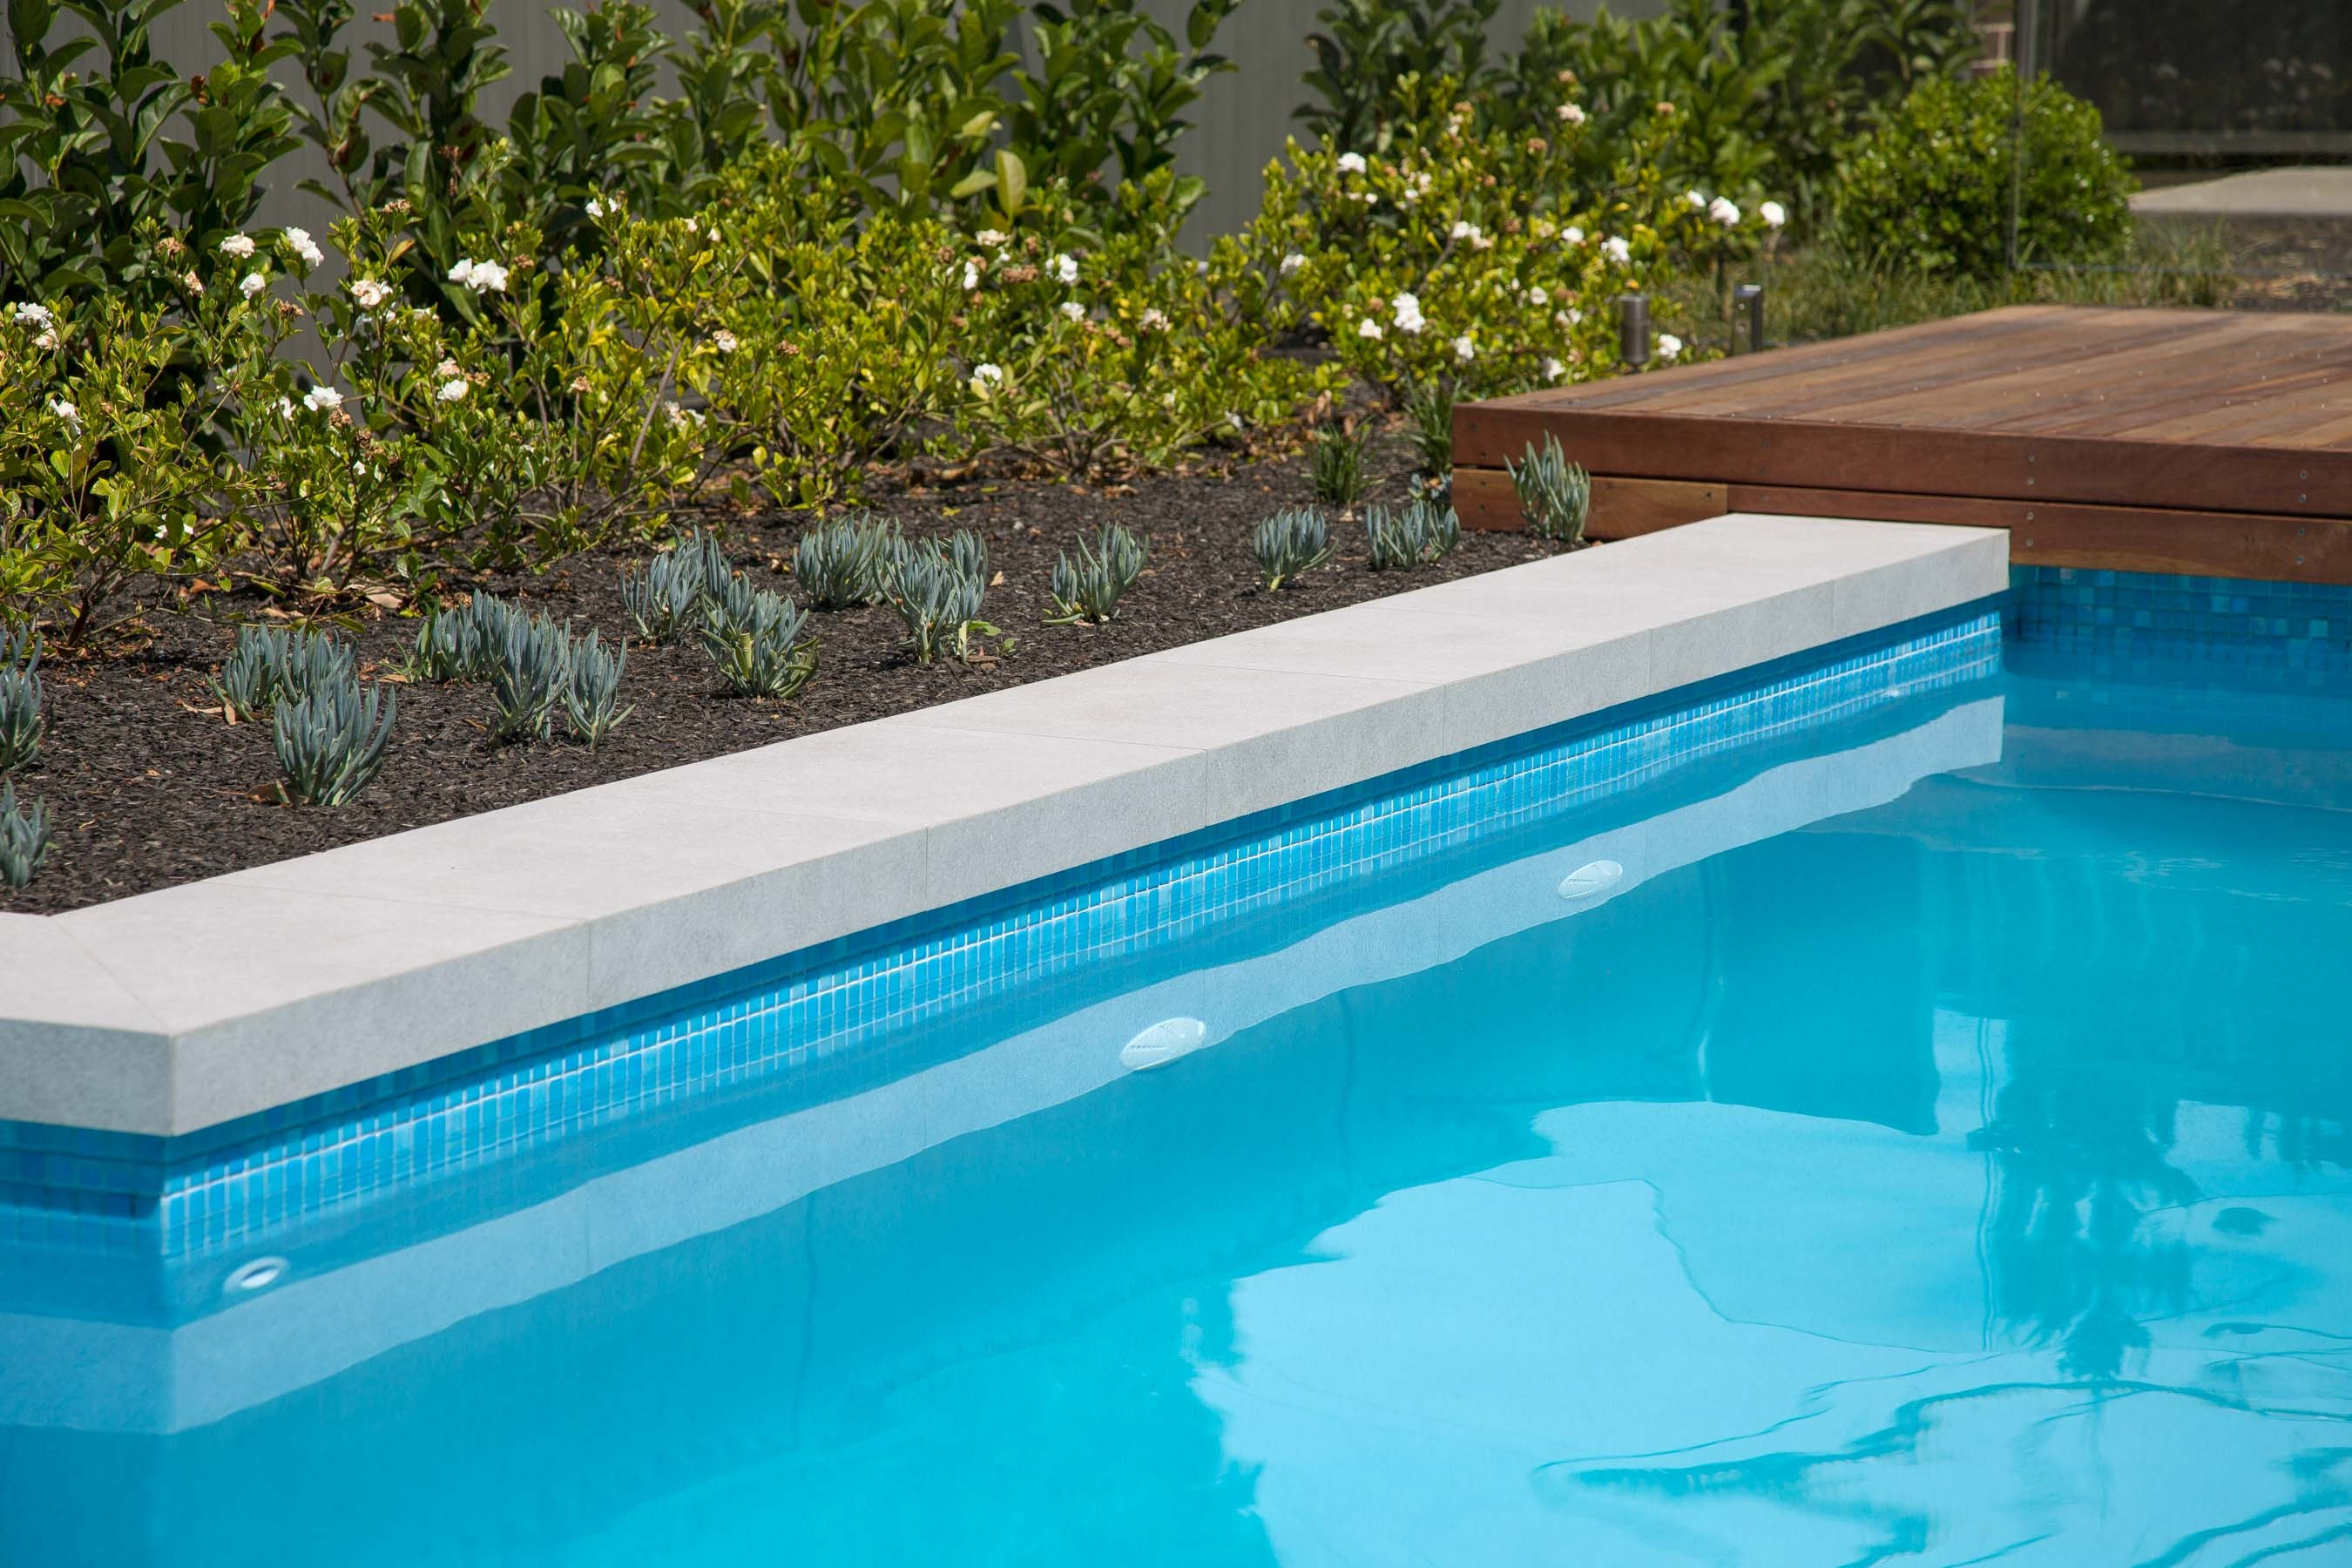 Porcelain-Pavers-Outdoor-20 Gallery livermore-perla-04